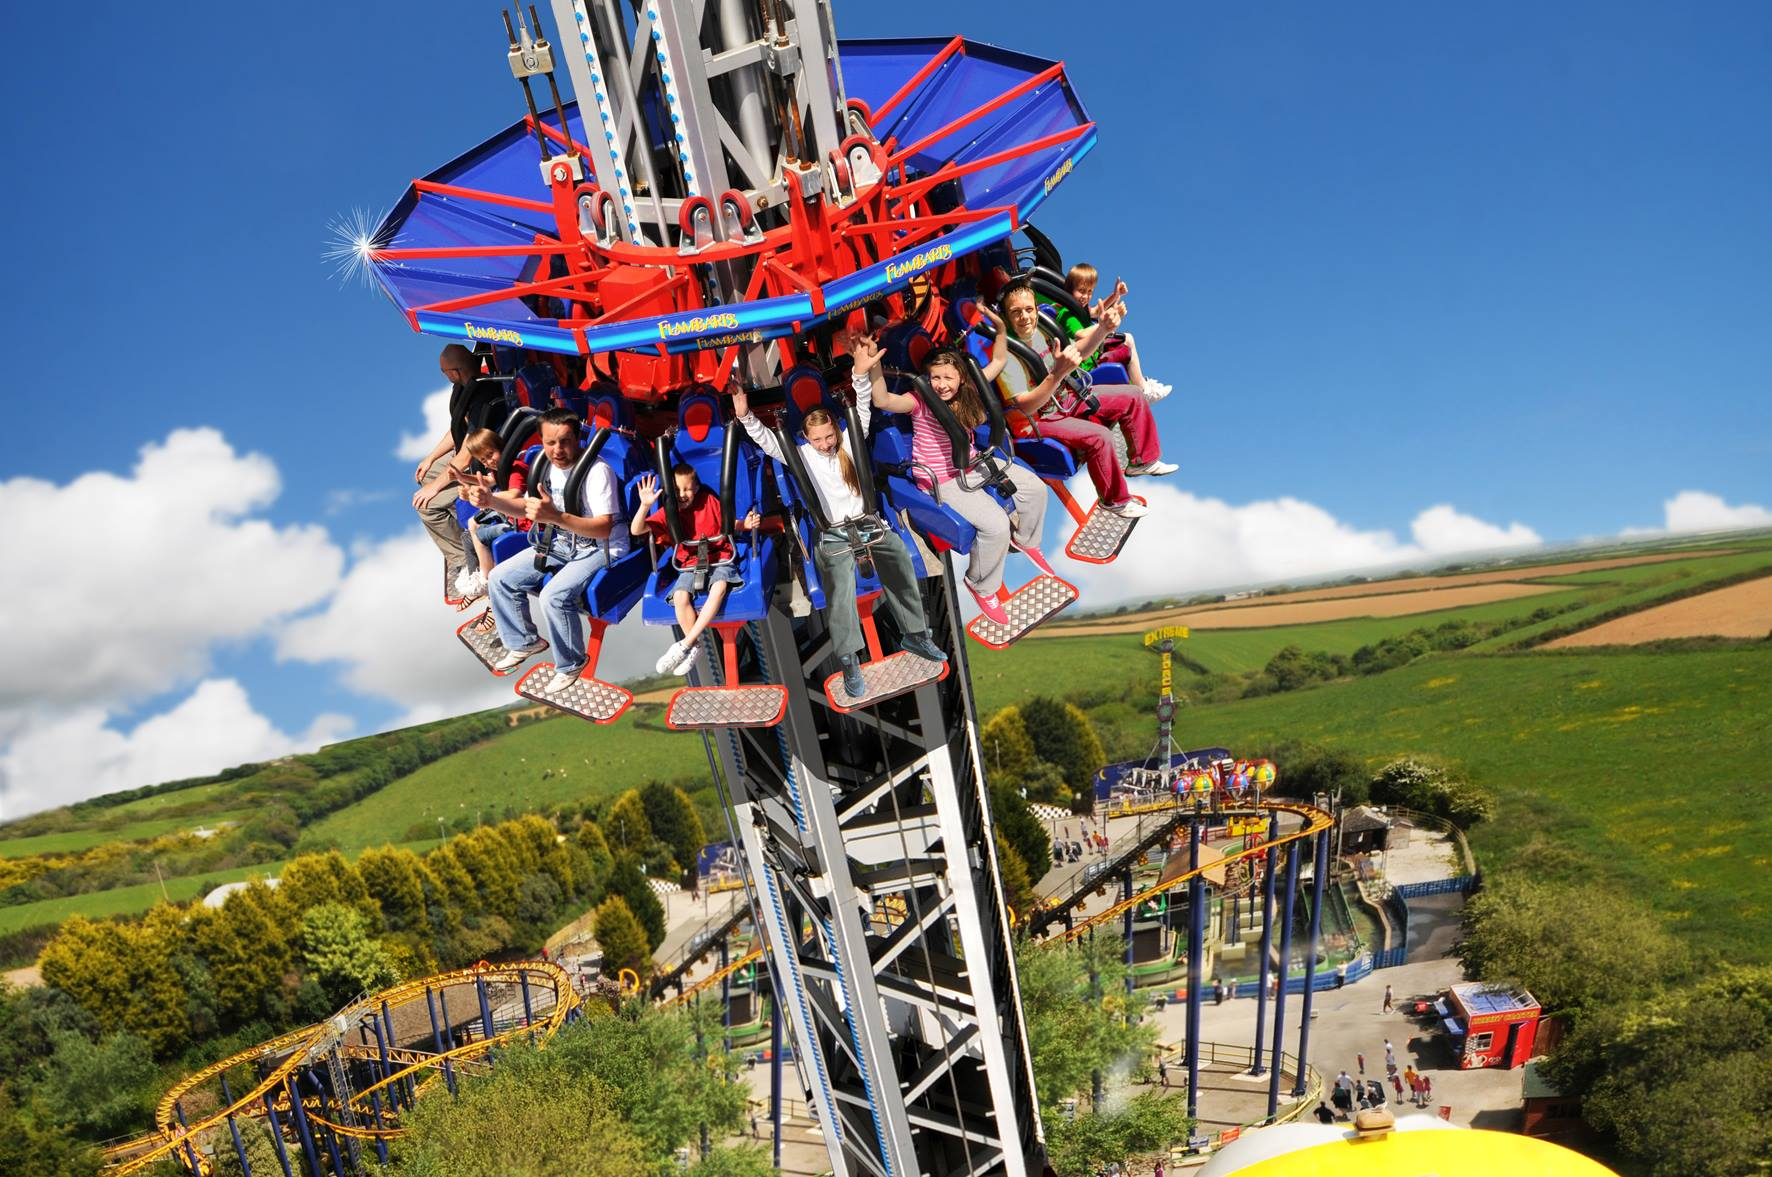 Days Out With Kids West Midlands